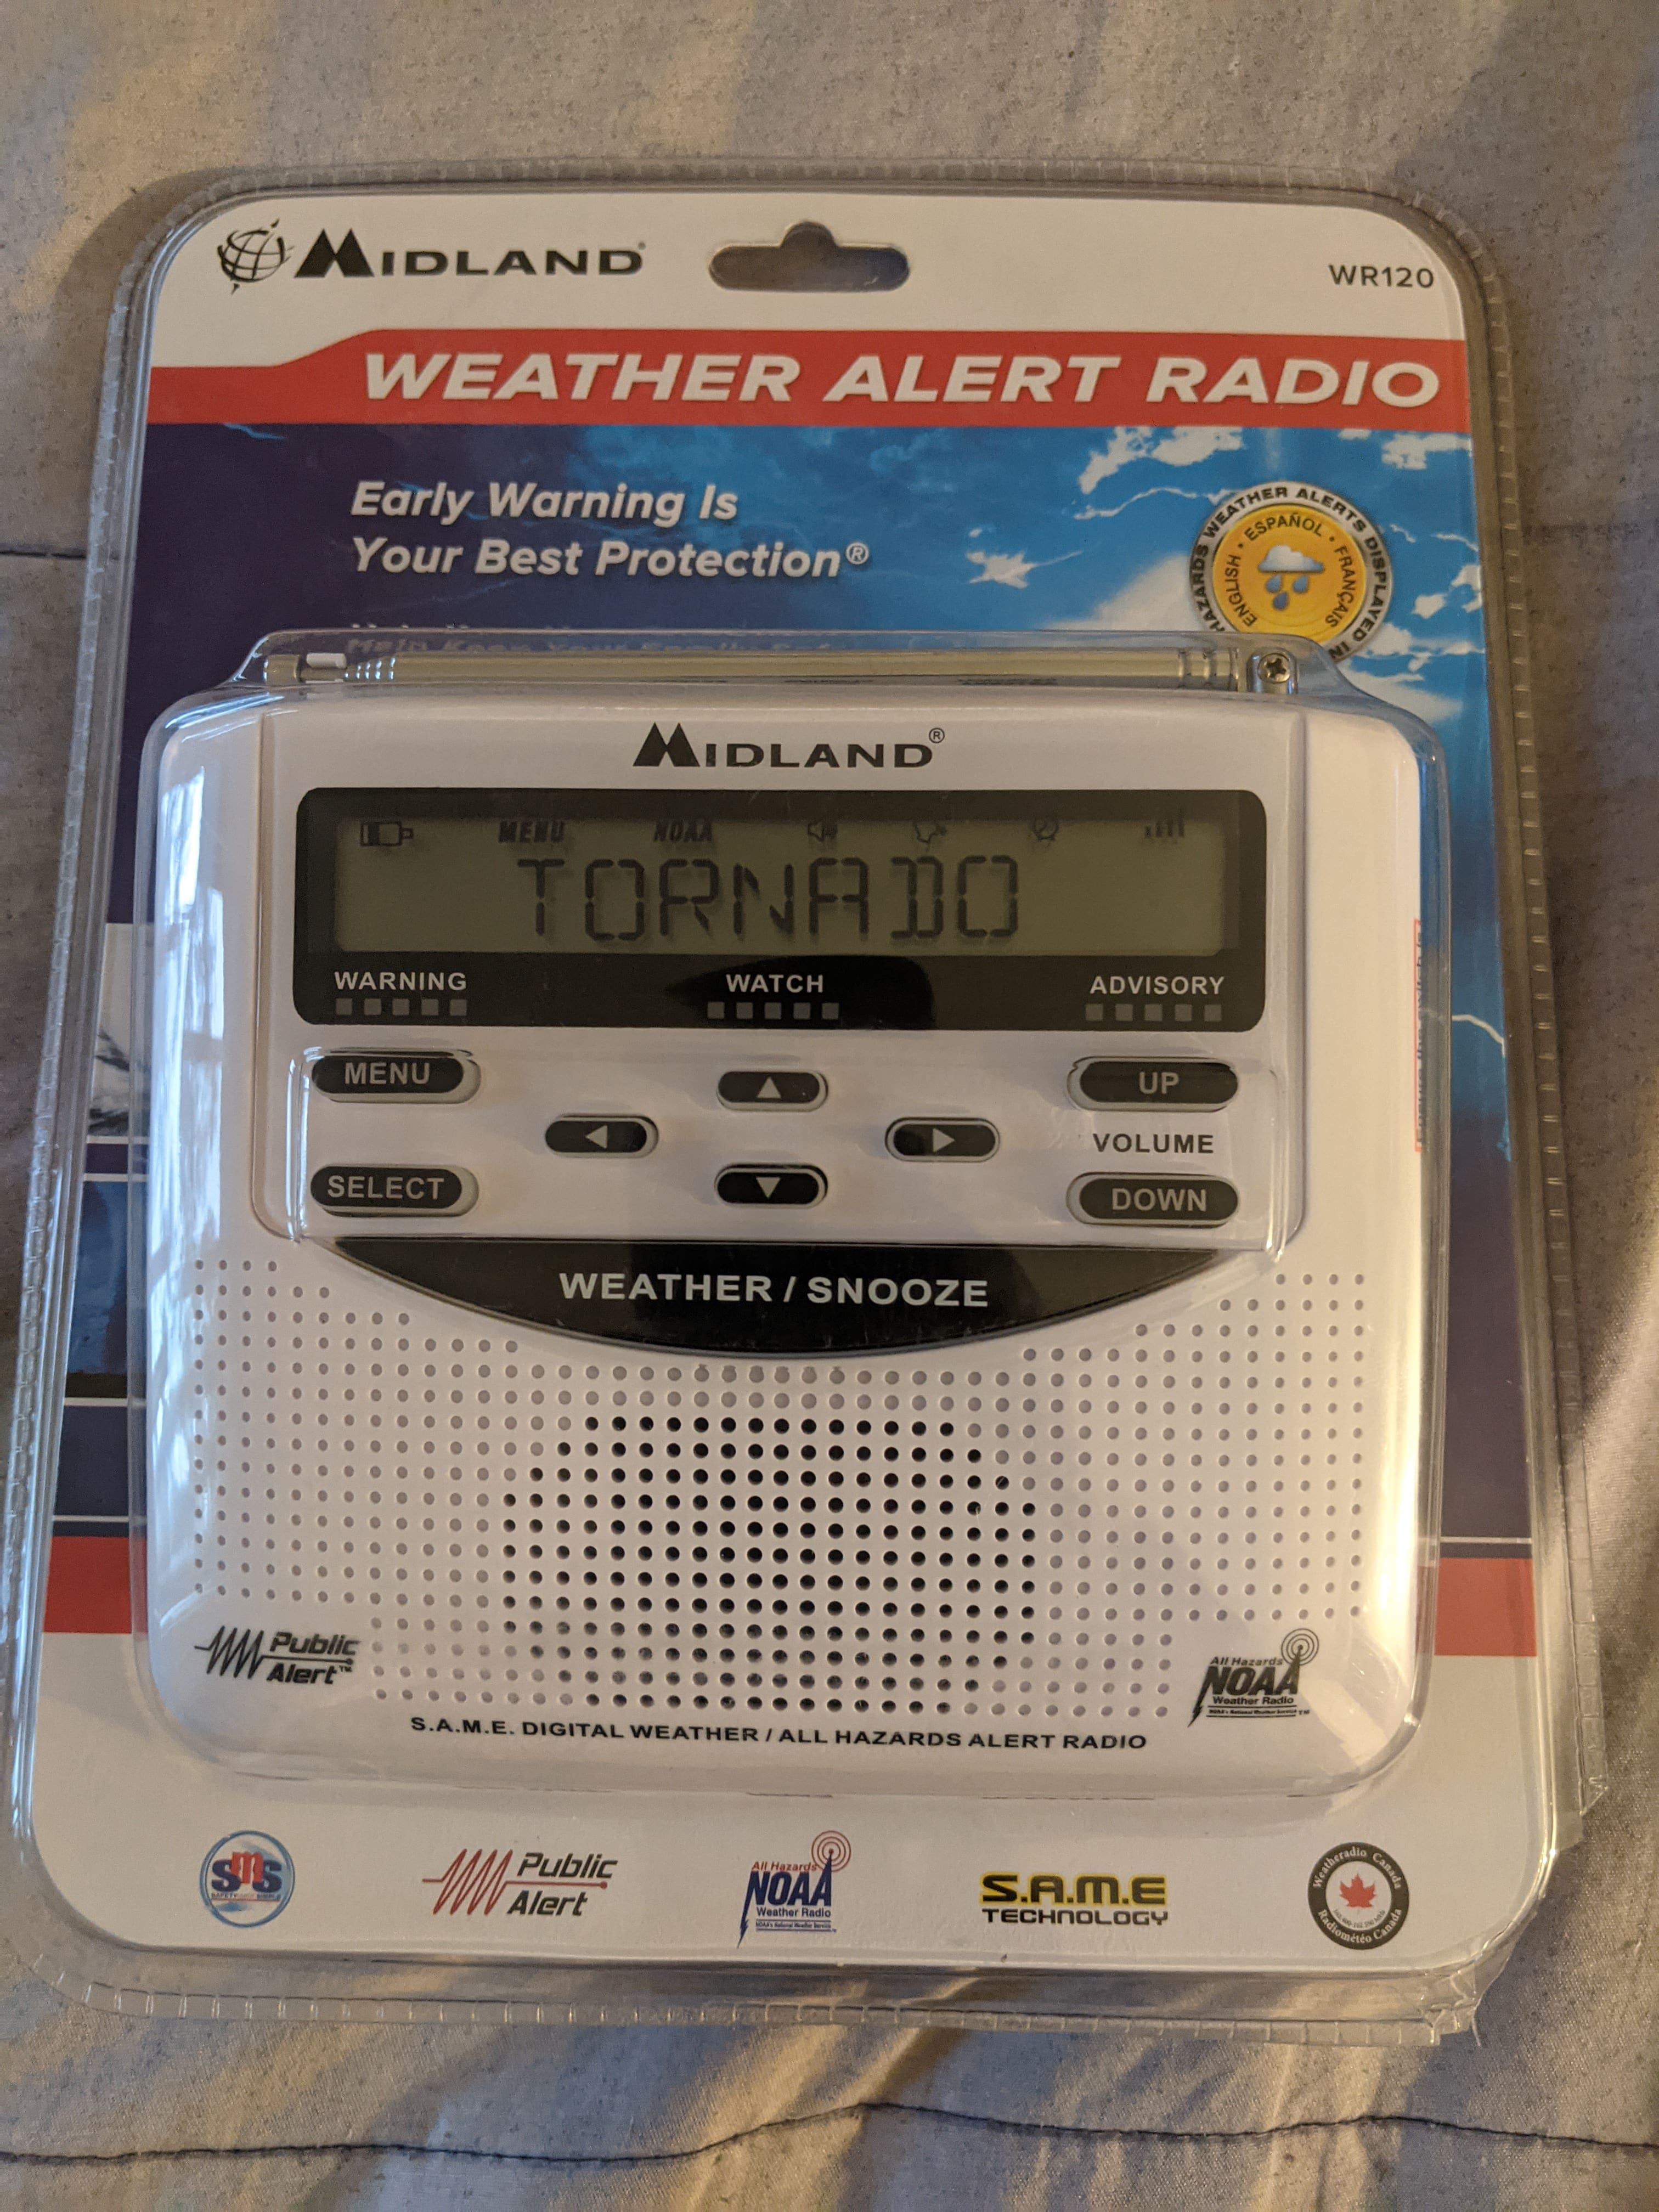 Walgreens: Midland - WR120, NOAA Emergency Weather Alert Radio  $3.79 ymmv